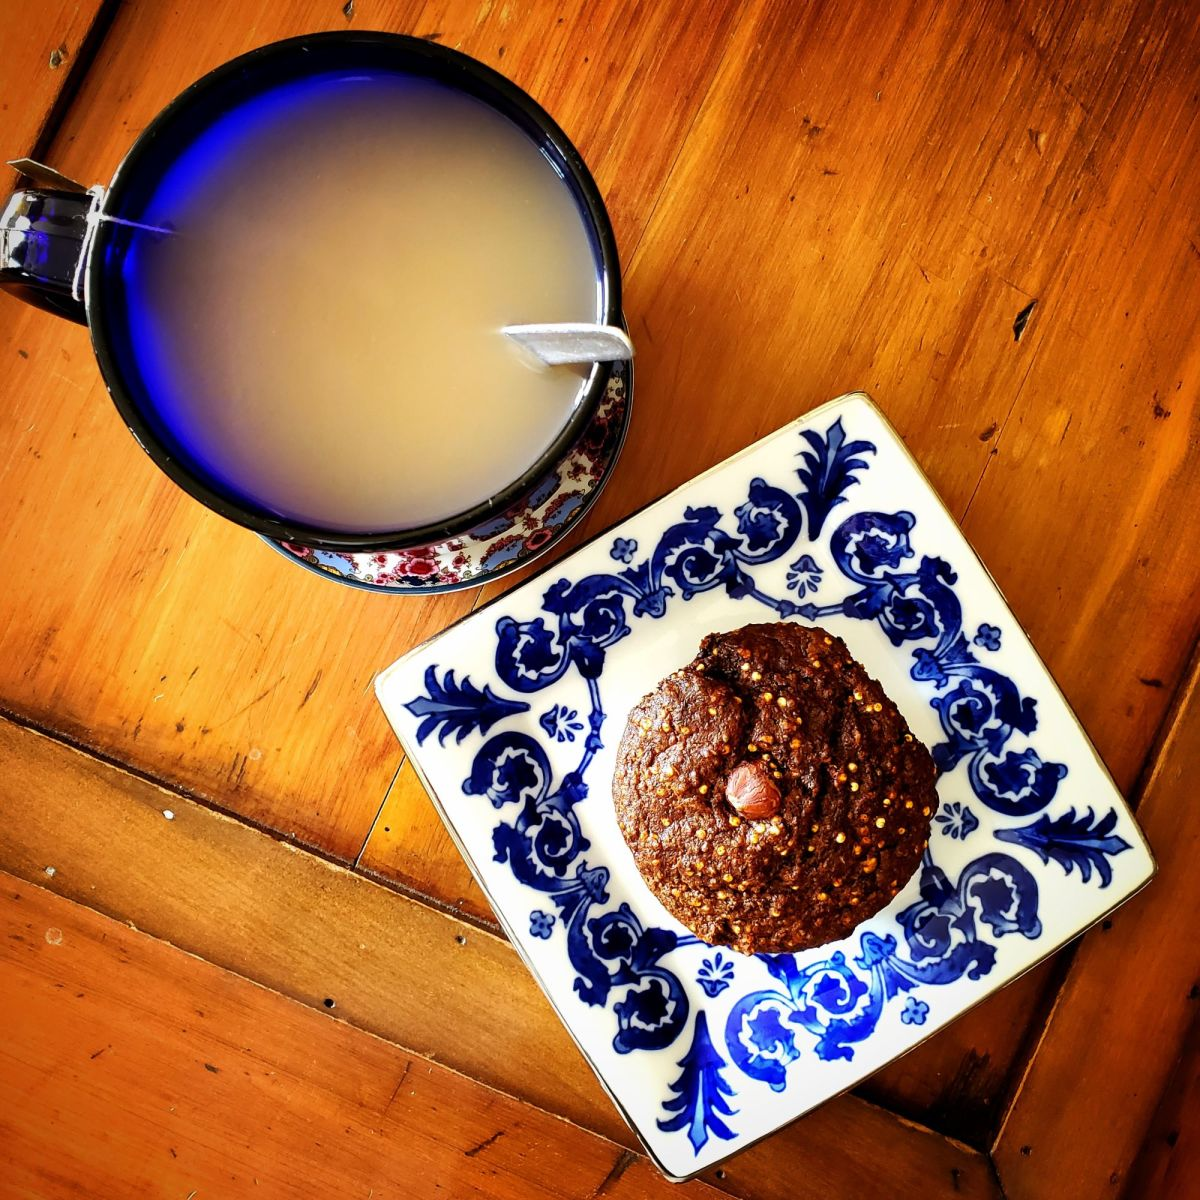 Everyone craves a little sweetness. These muffins are perfect! Just a little sweetness and lots of nutrition.  But most importantly, they stop the craving monster in its tracks! And they are oh-so-good with some coffee.